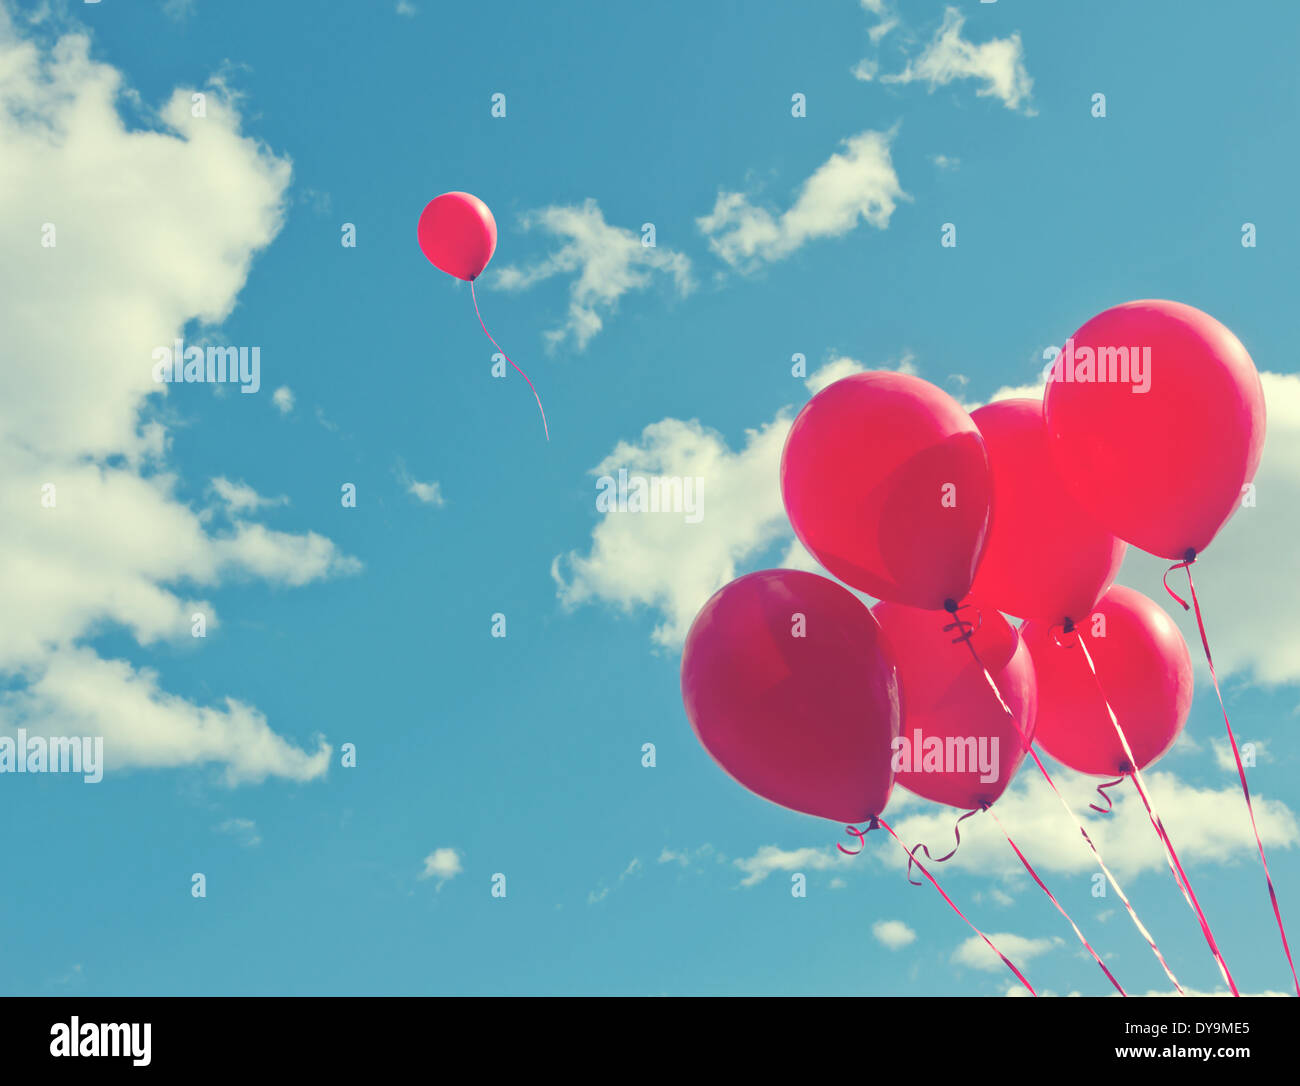 Ballon Bilder Free Balloon Stockfotos And Free Balloon Bilder Alamy